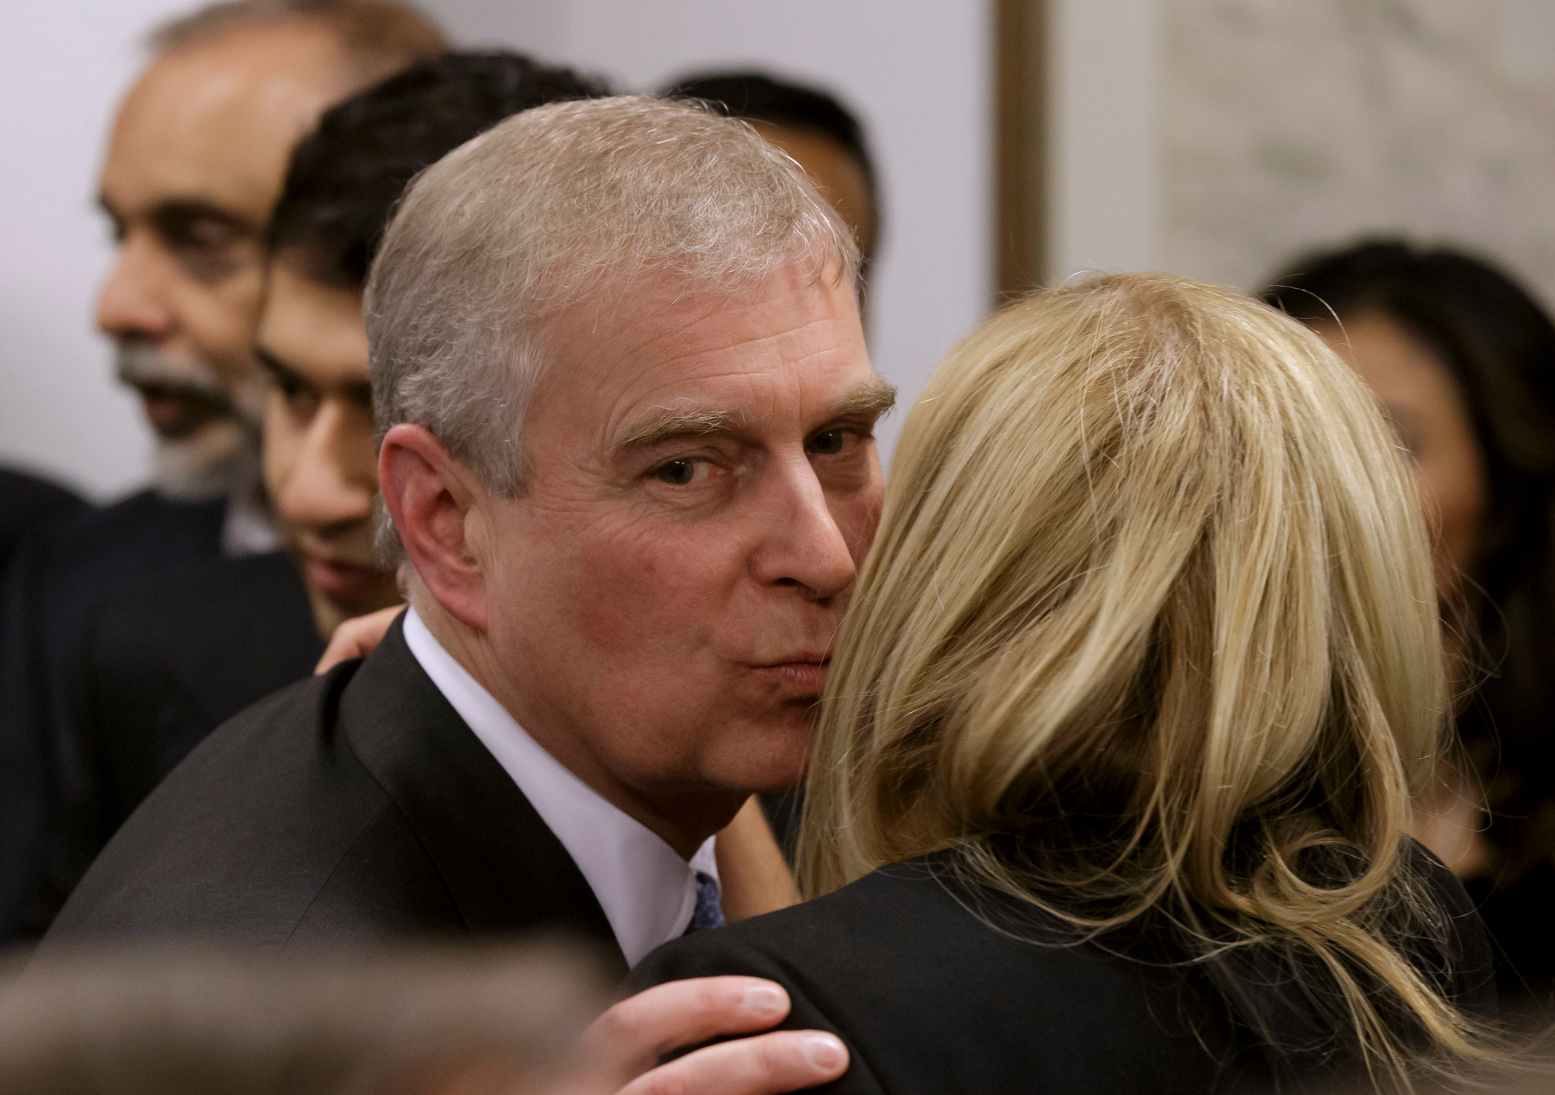 Epstein Accuser Night With Prince Andrew Was Disgusting The